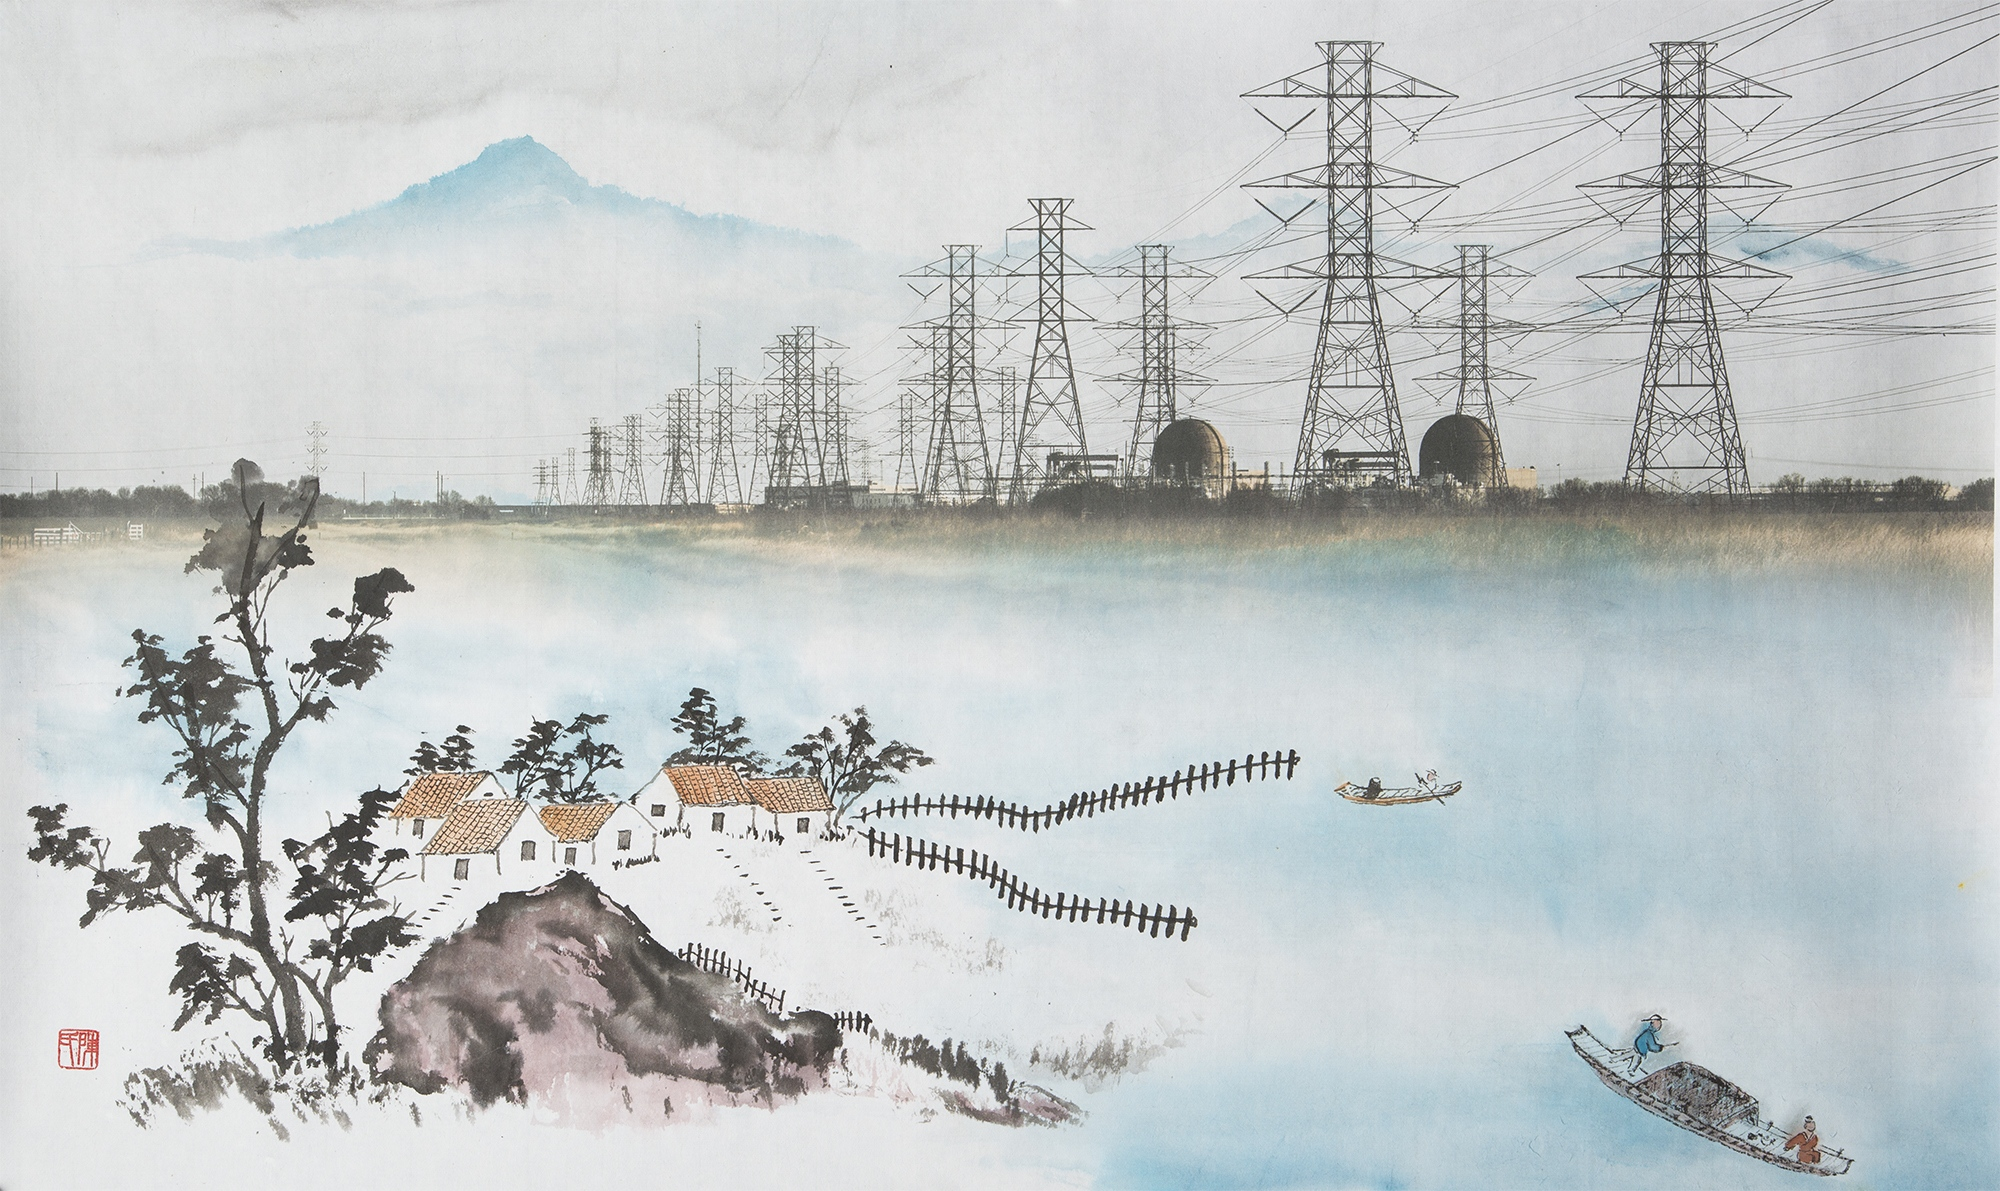 Art and Documentary Photography - Loading Chen_Pastoral_Landscape_with_Nuclear_Power_Plant_01.jpg